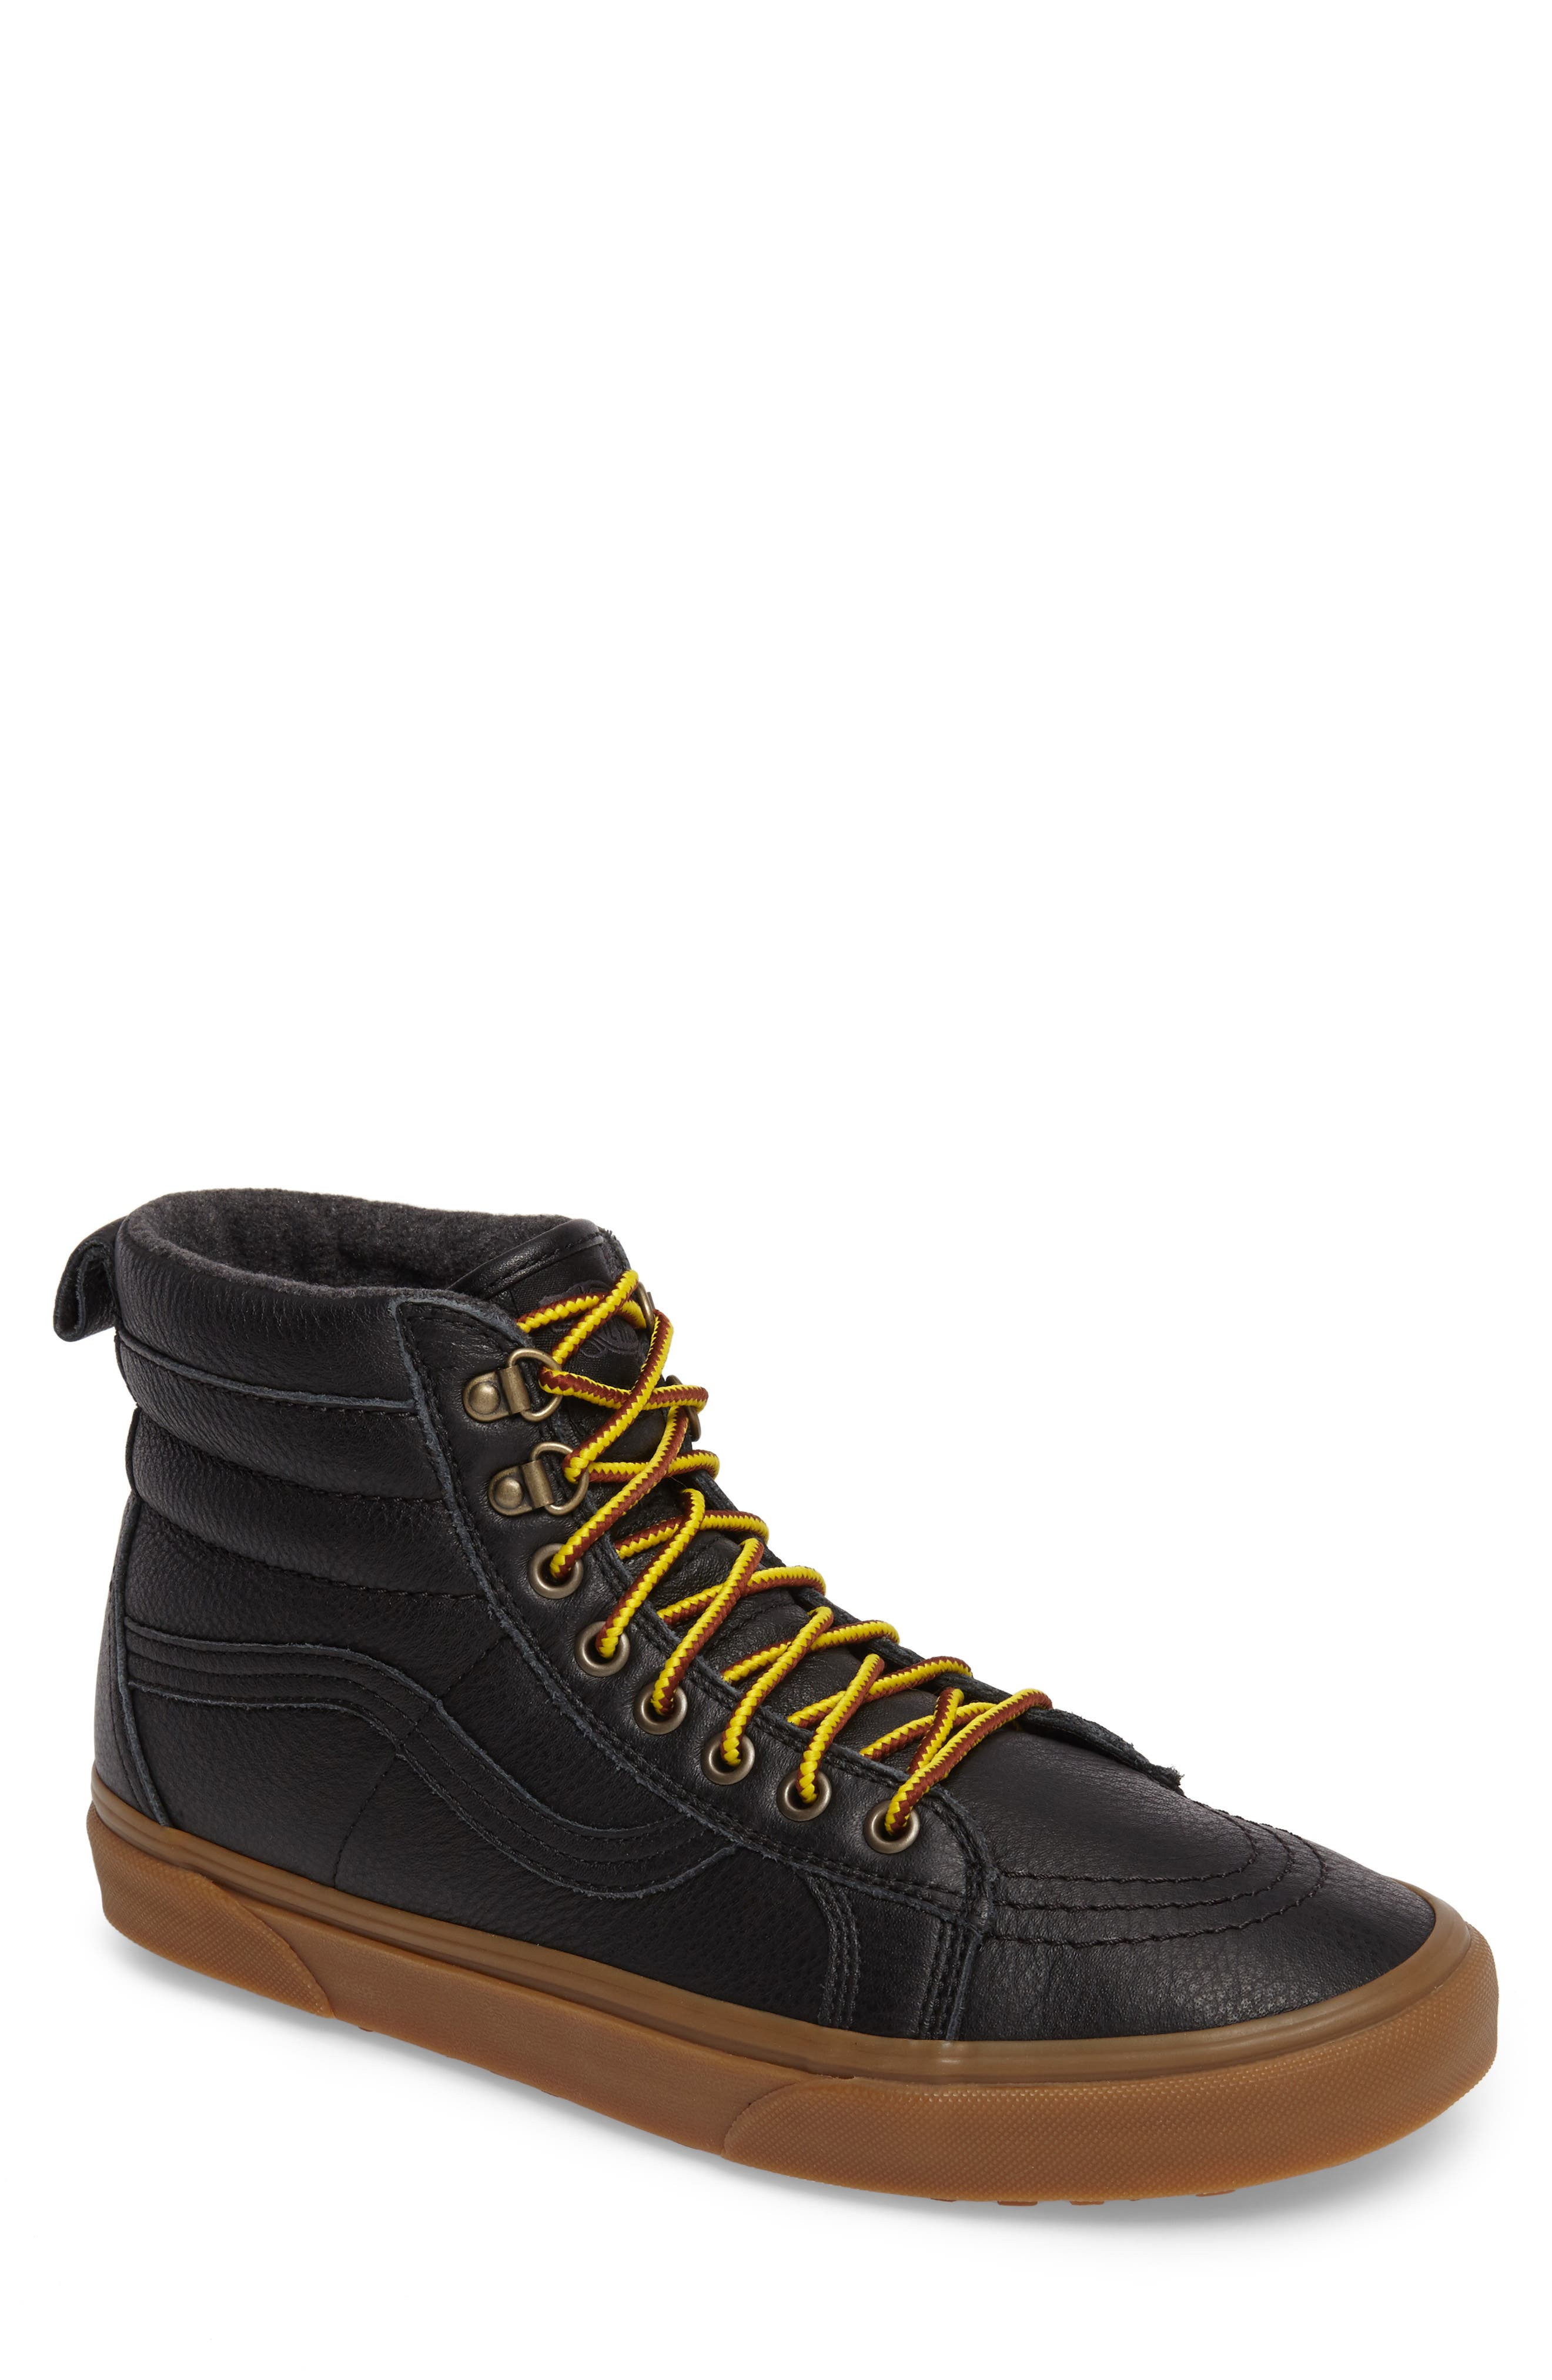 SK8-Hi MTE Insulated Water Resistant Sneaker,                         Main,                         color, 001